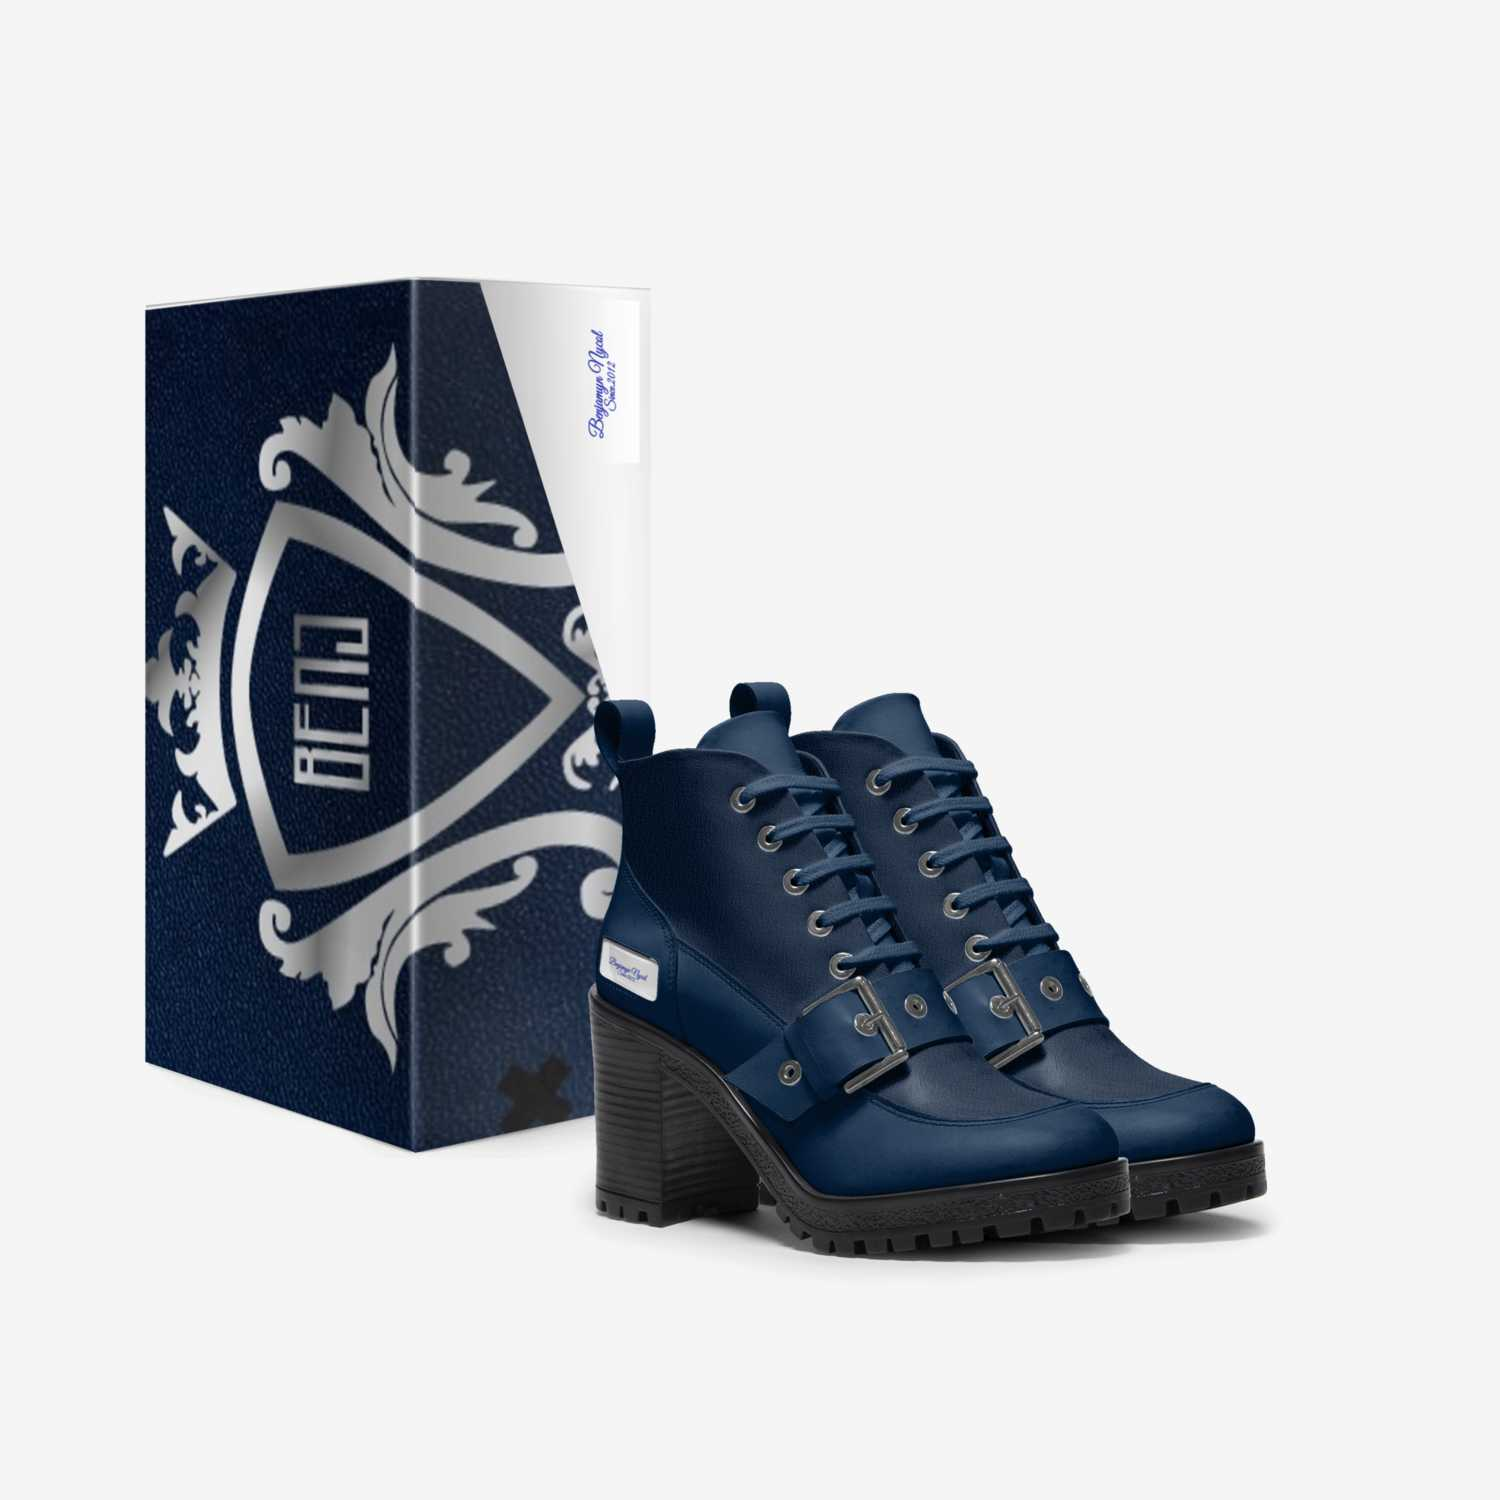 BENJAMYN NYCOL custom made in Italy shoes by Nicol Walker   Box view